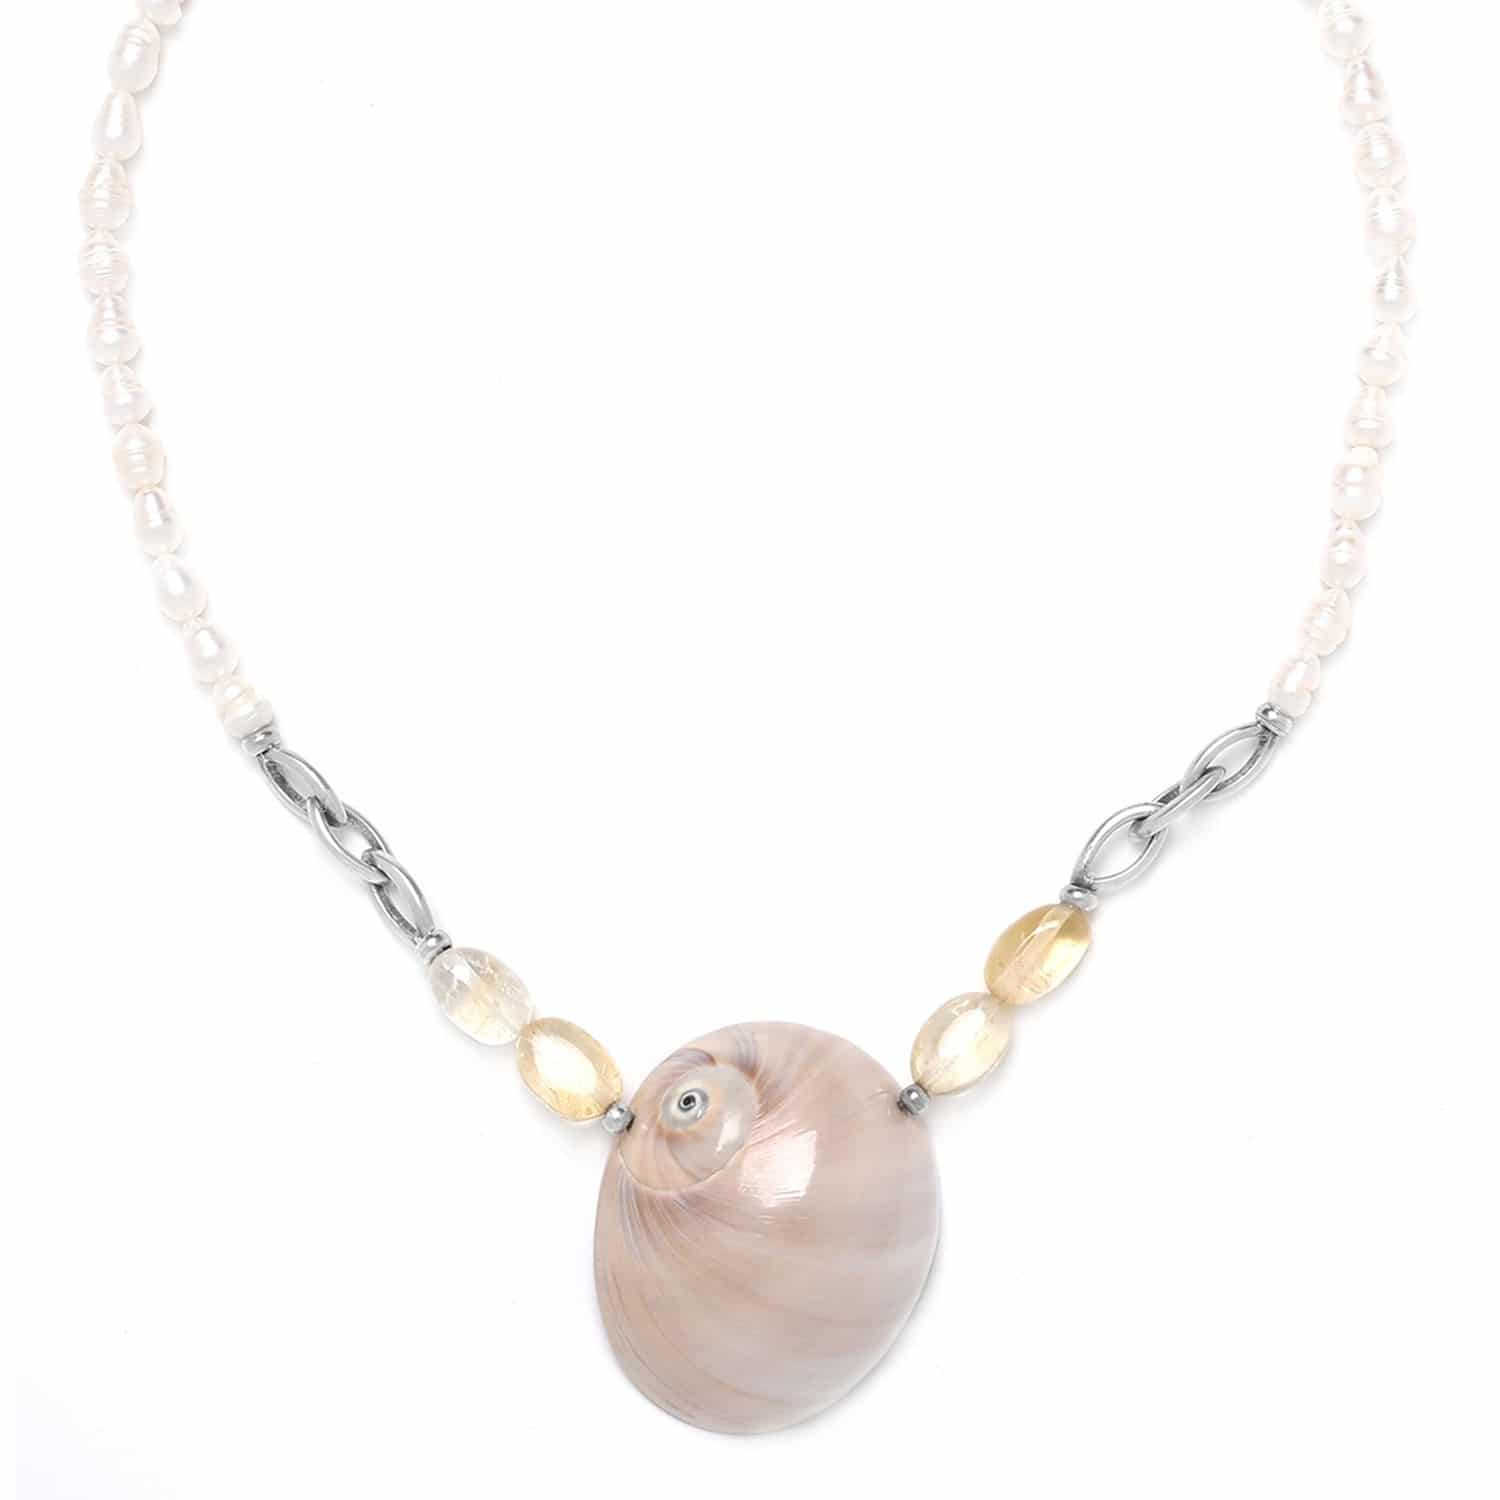 MAKATEA pearl necklace